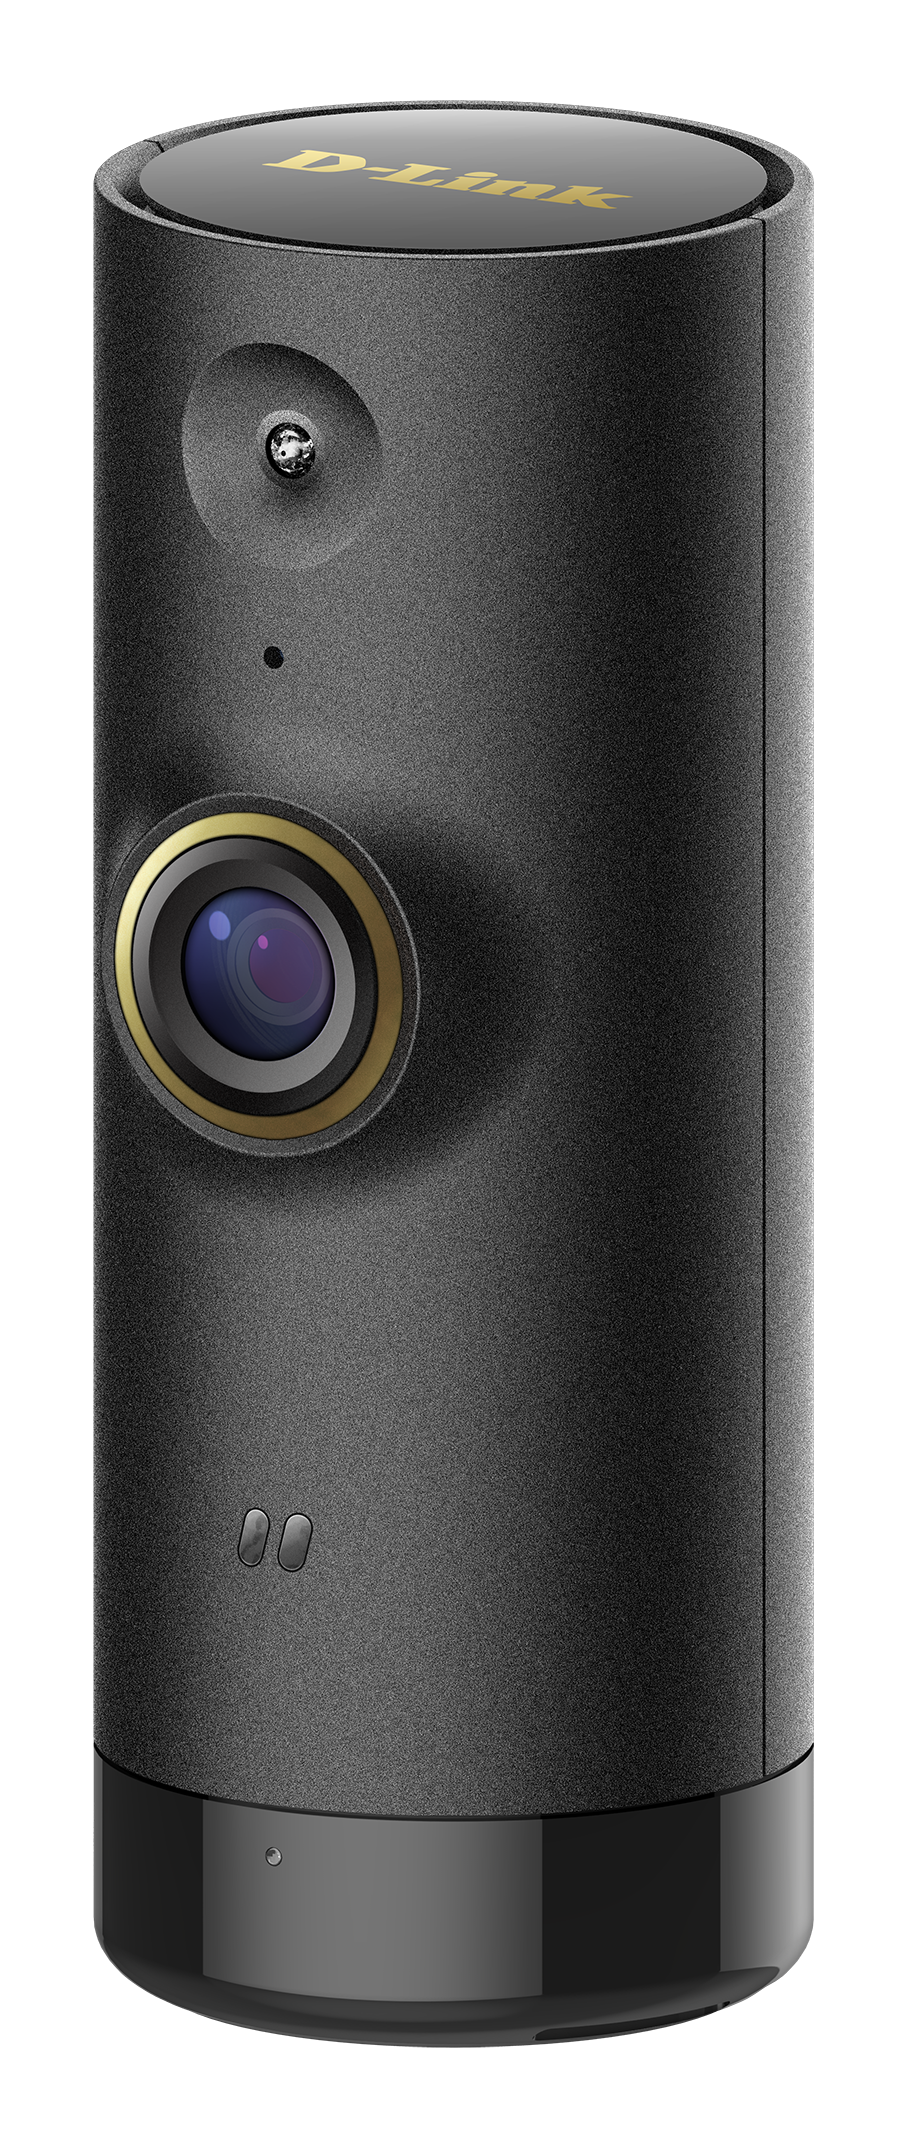 DCS-P6000LH Mini Wi-Fi Camera side left